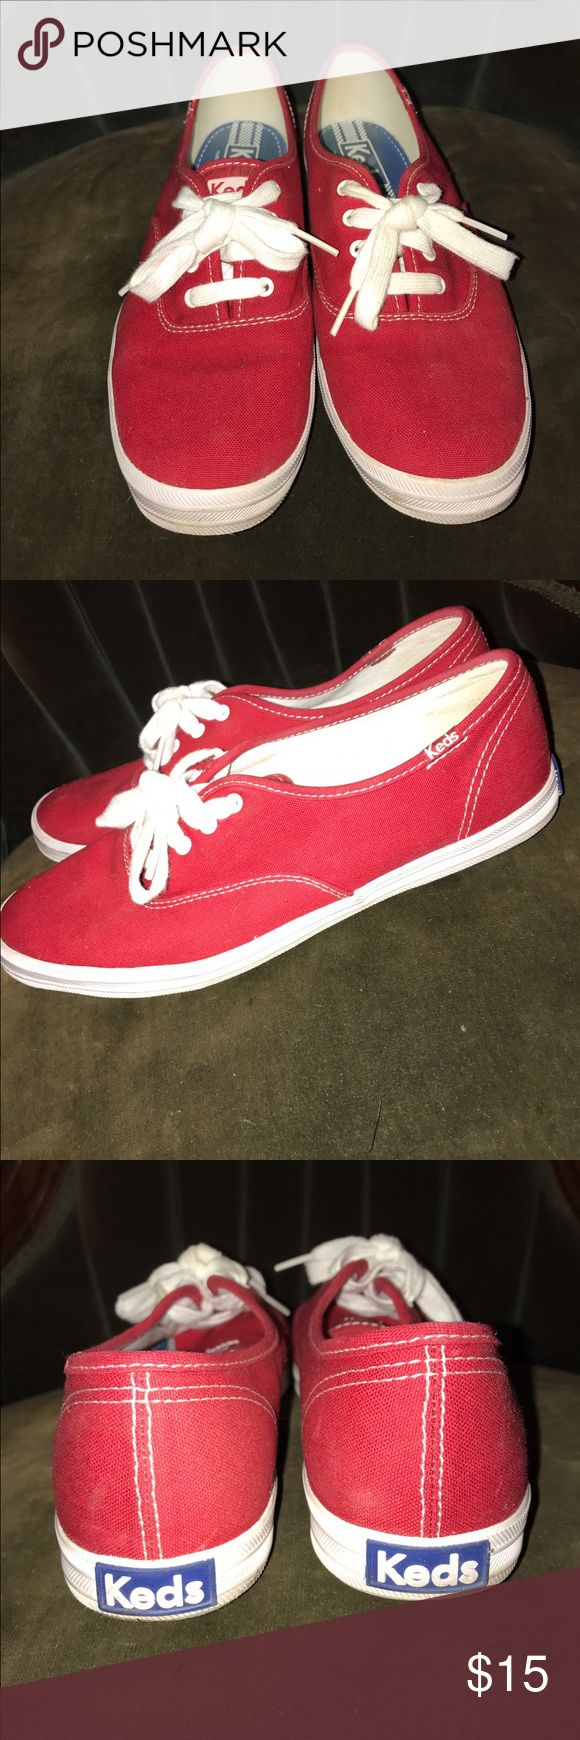 Keds Champion Originals Red with white laces Keds Shoes Sneakers